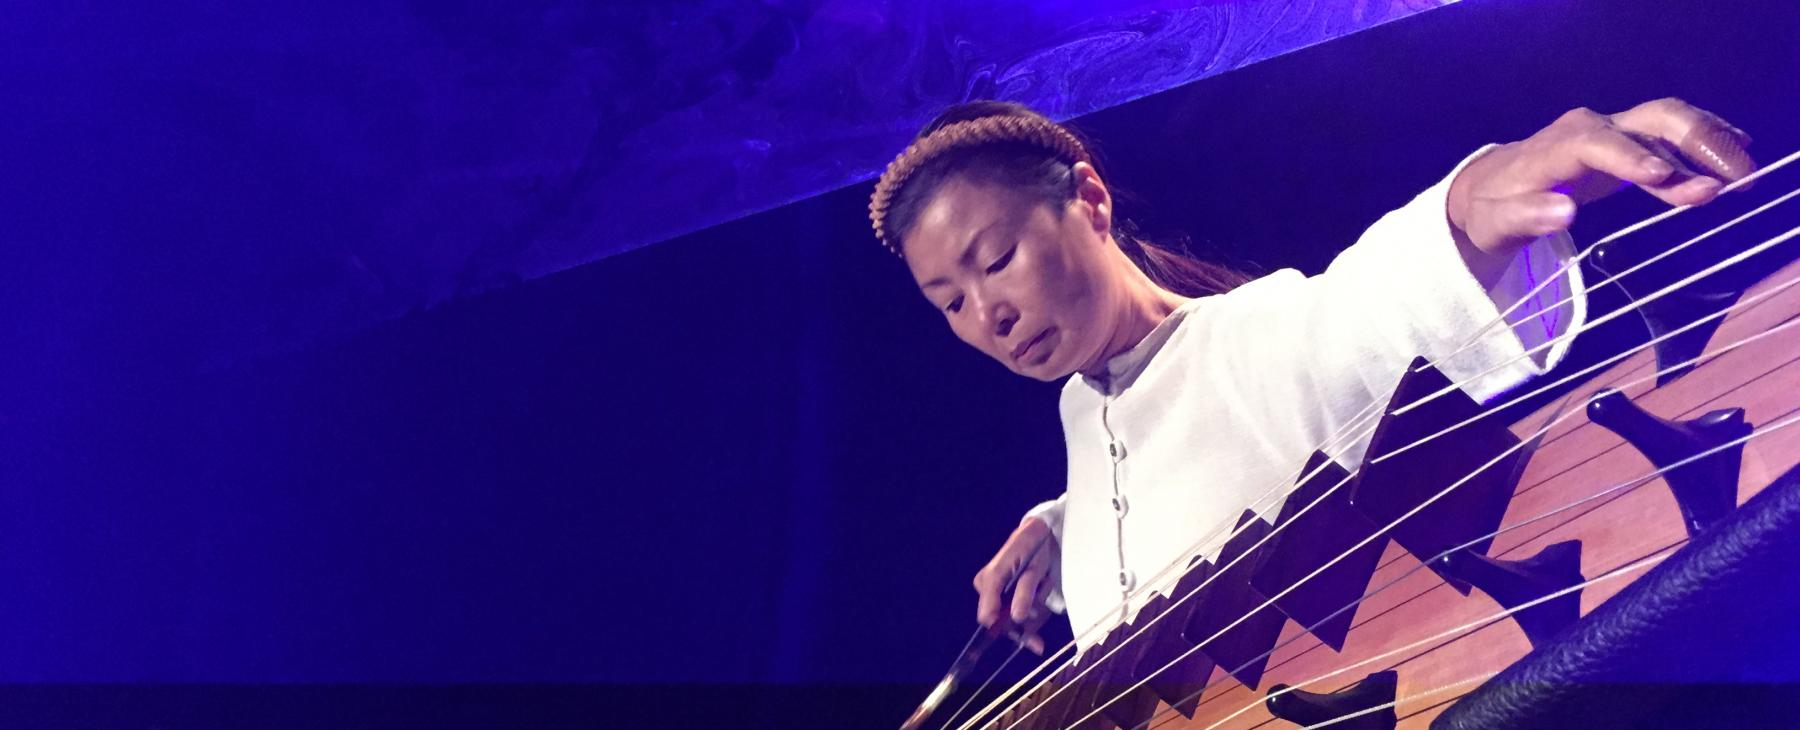 Jin Hi Kim plays the electric komungo, a long stringed instrument.